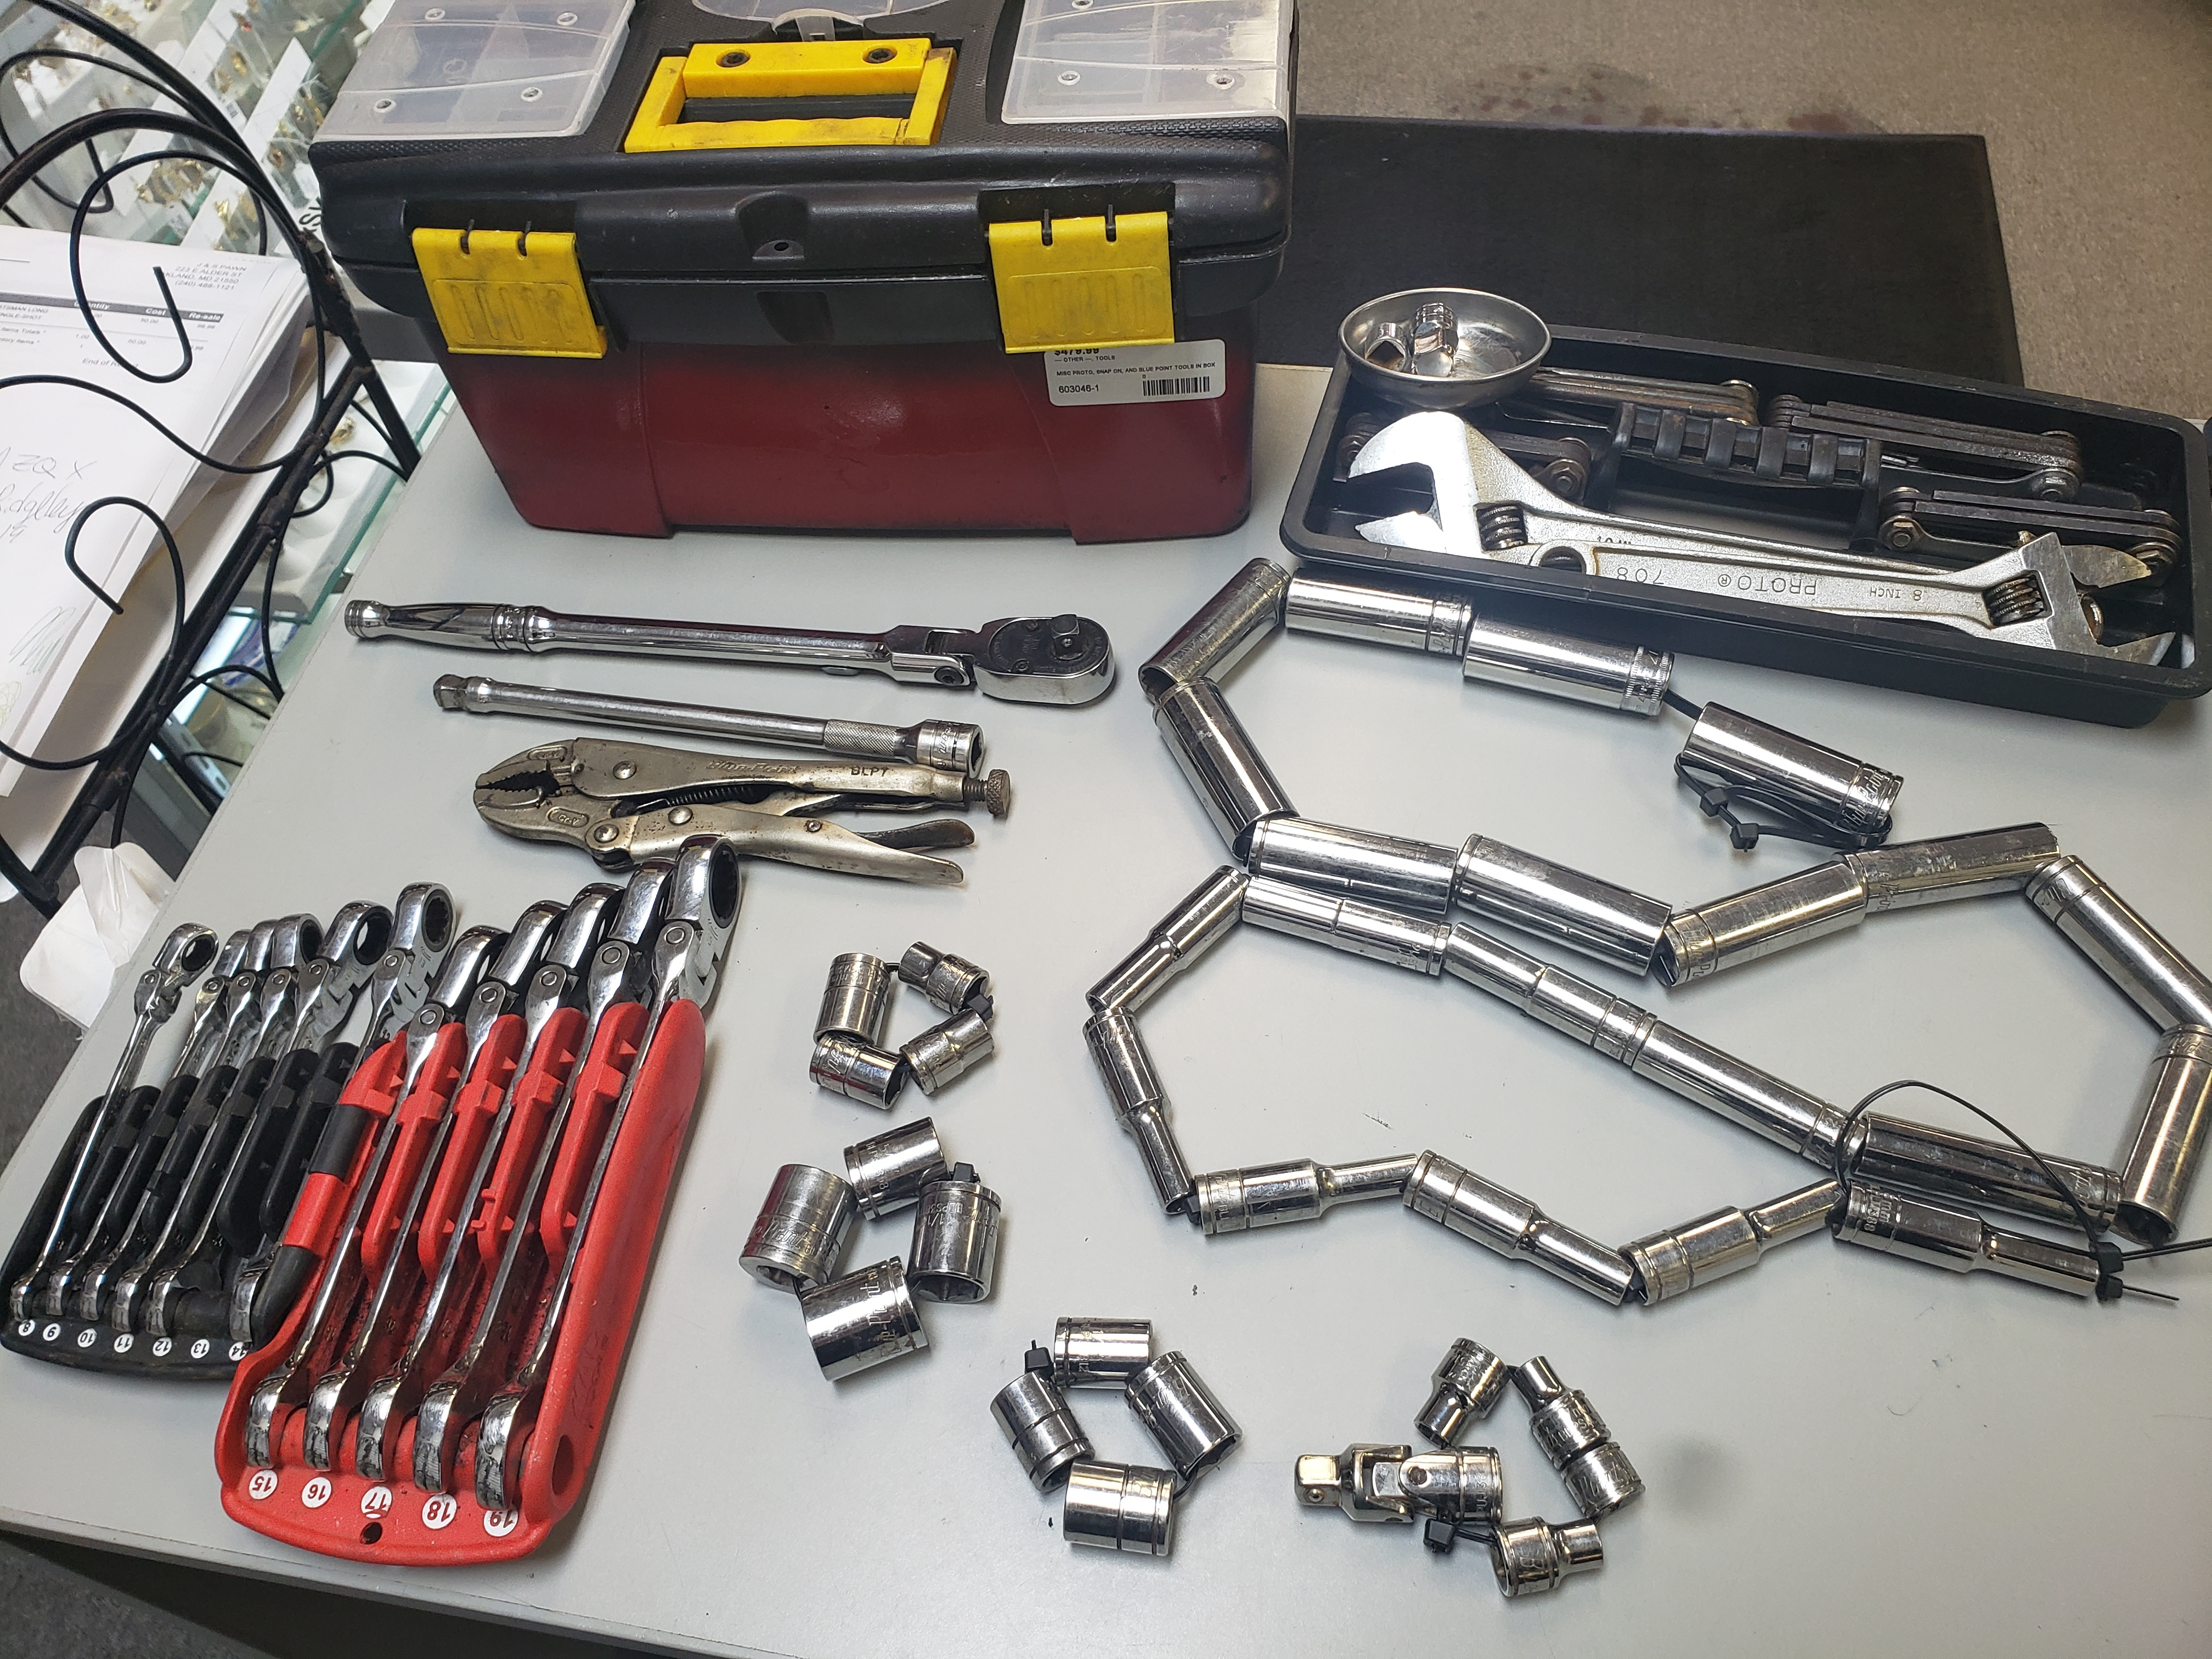 61 PC MISC BLUE POINT, SNAP ON, AND PROTO TOOLS (SEE DETAILS)